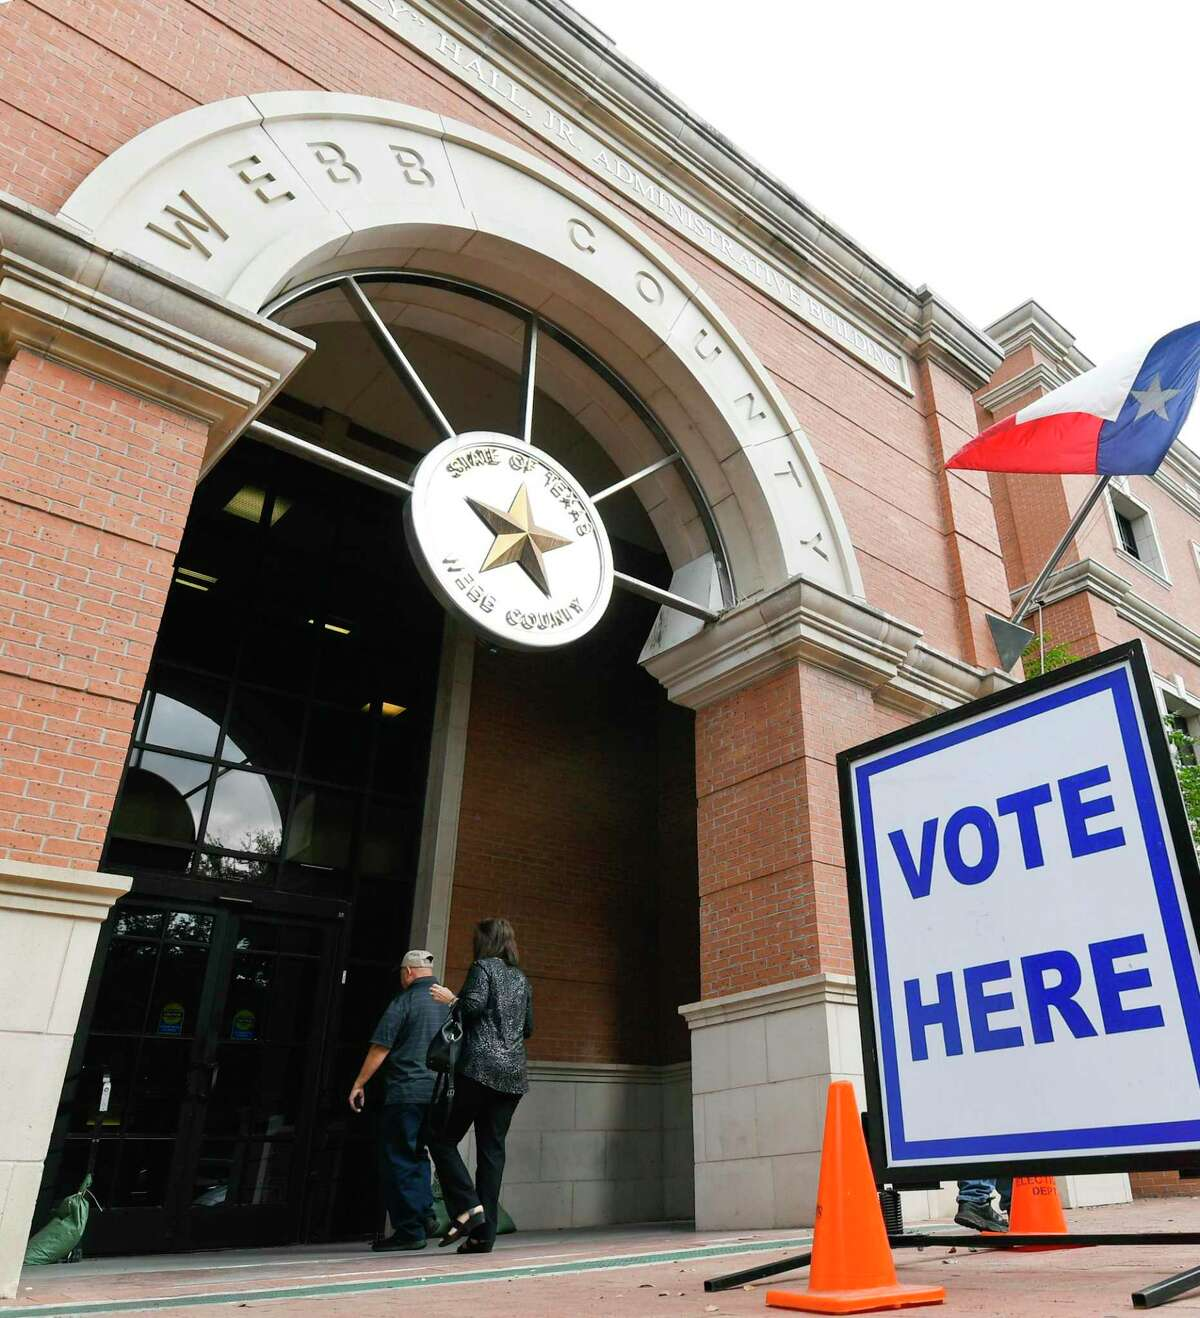 Voters have from 7 a.m. to 7 p.m. Tuesday to cast their ballot at their designated polling place.